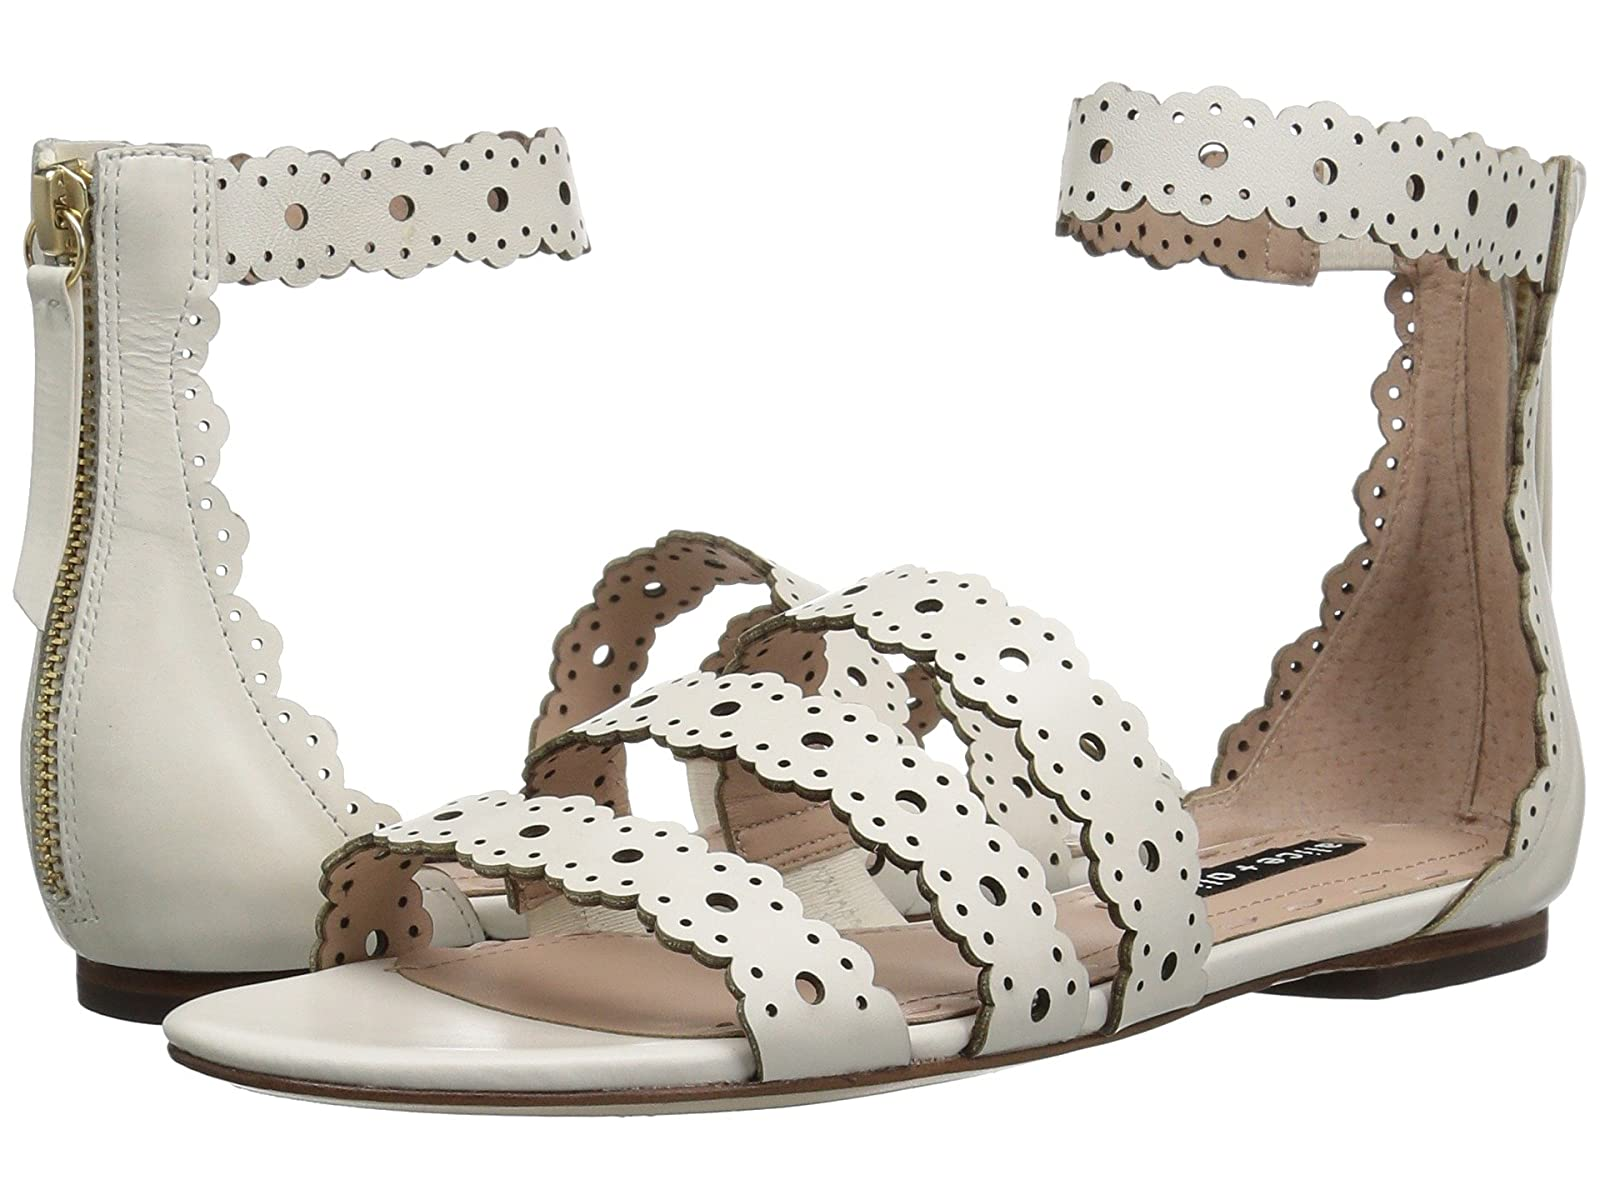 Alice + Olivia PennyCheap and distinctive eye-catching shoes